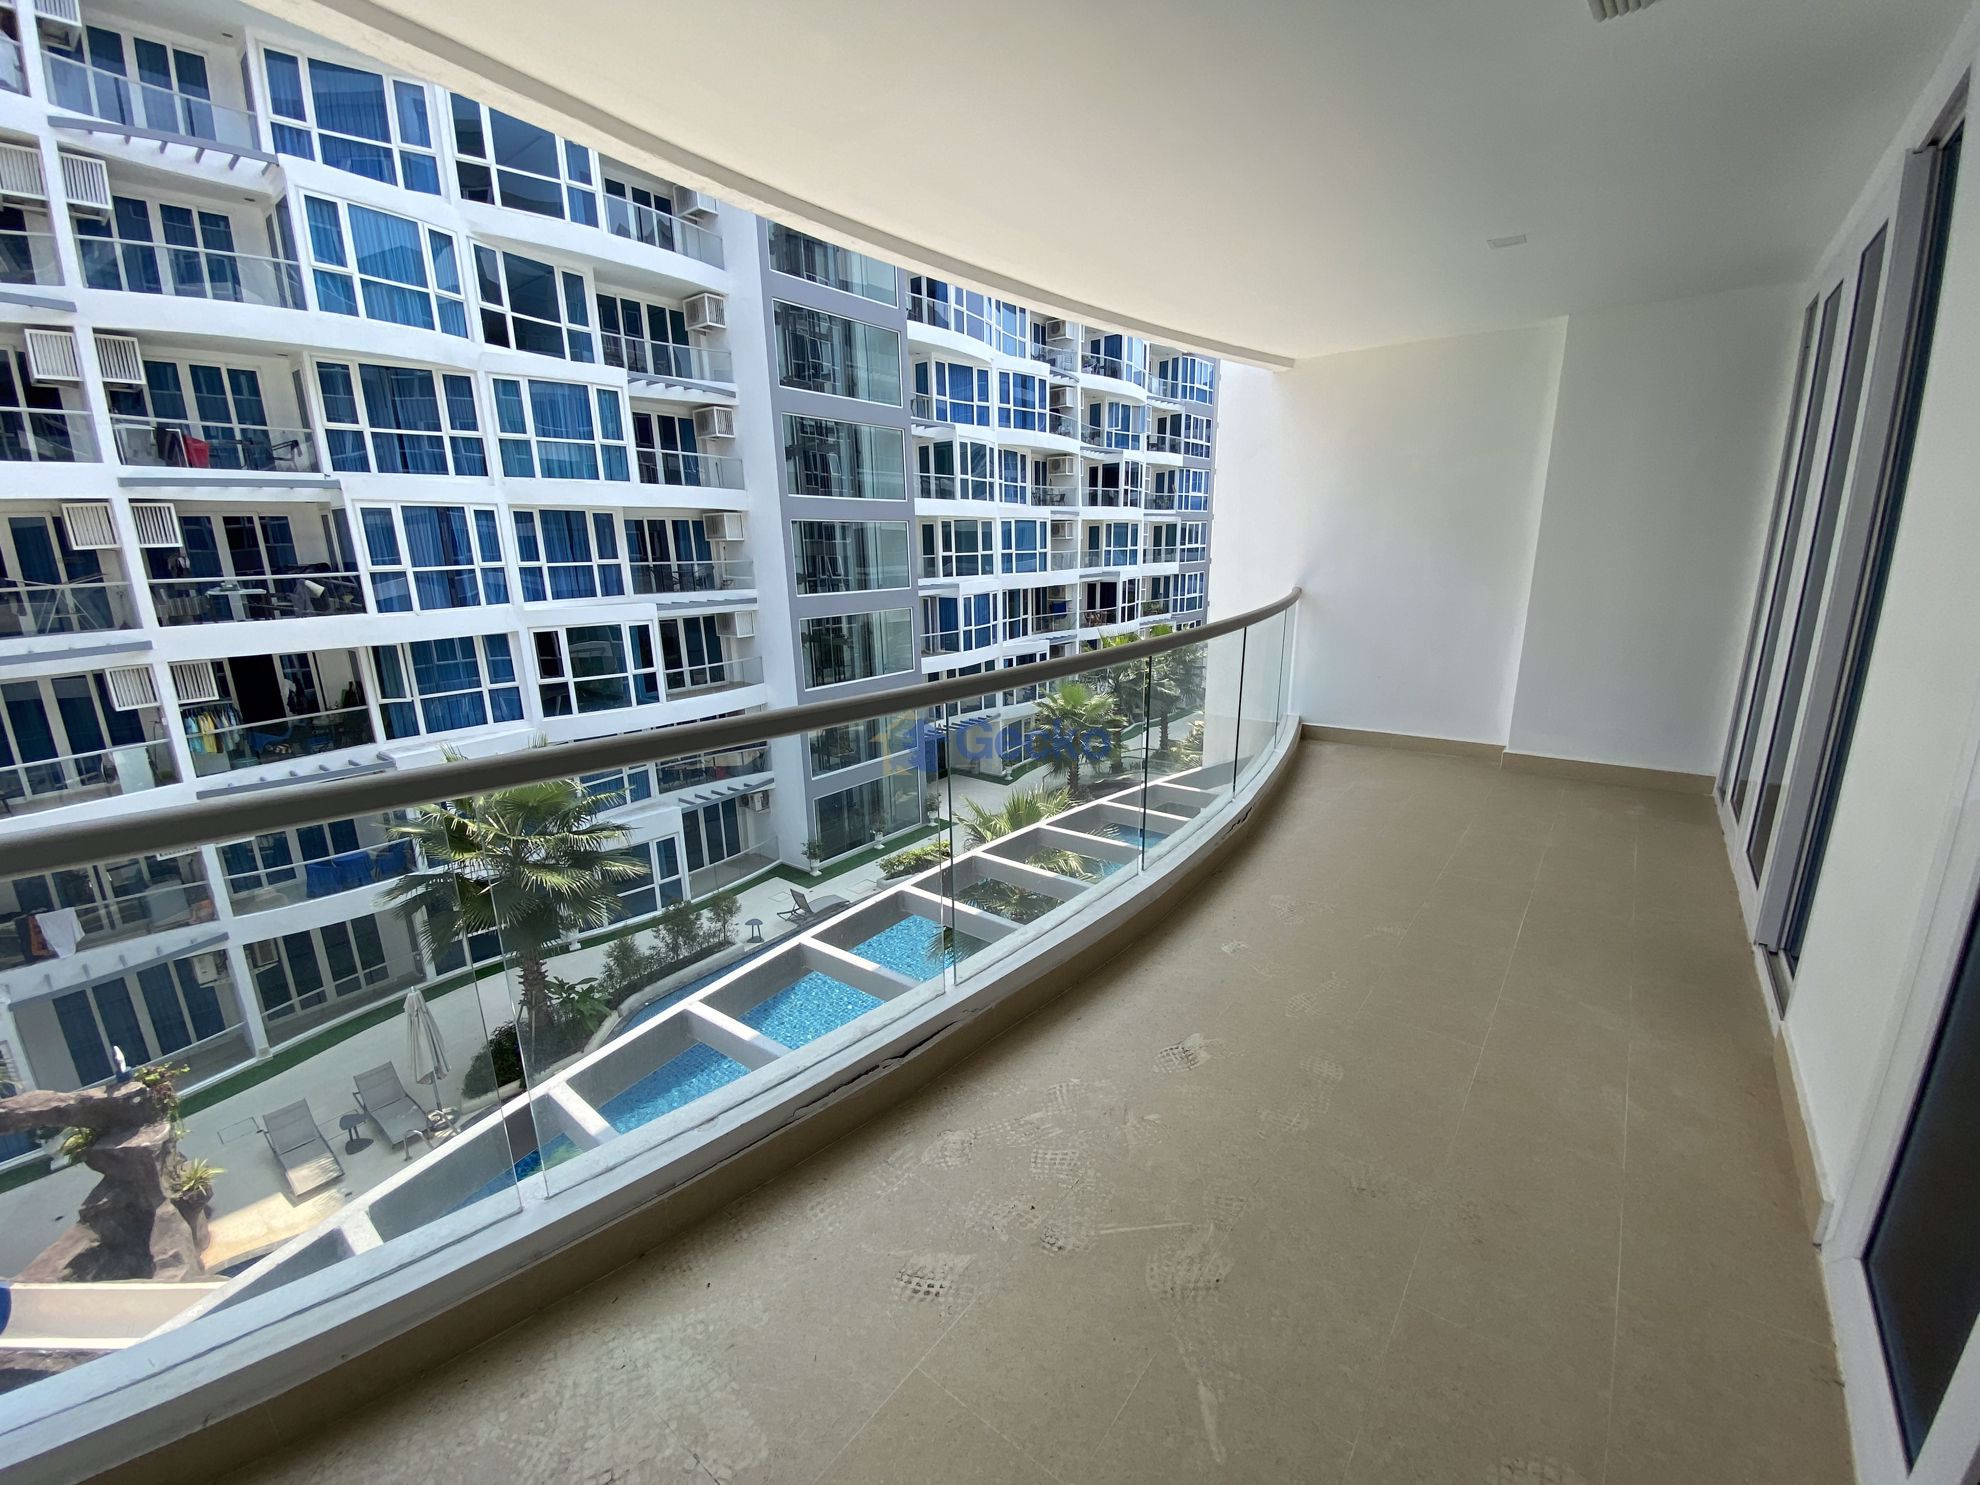 Picture of 2 Bedrooms bed in Condo in Grand Avenue Pattaya in Central Pattaya C009093